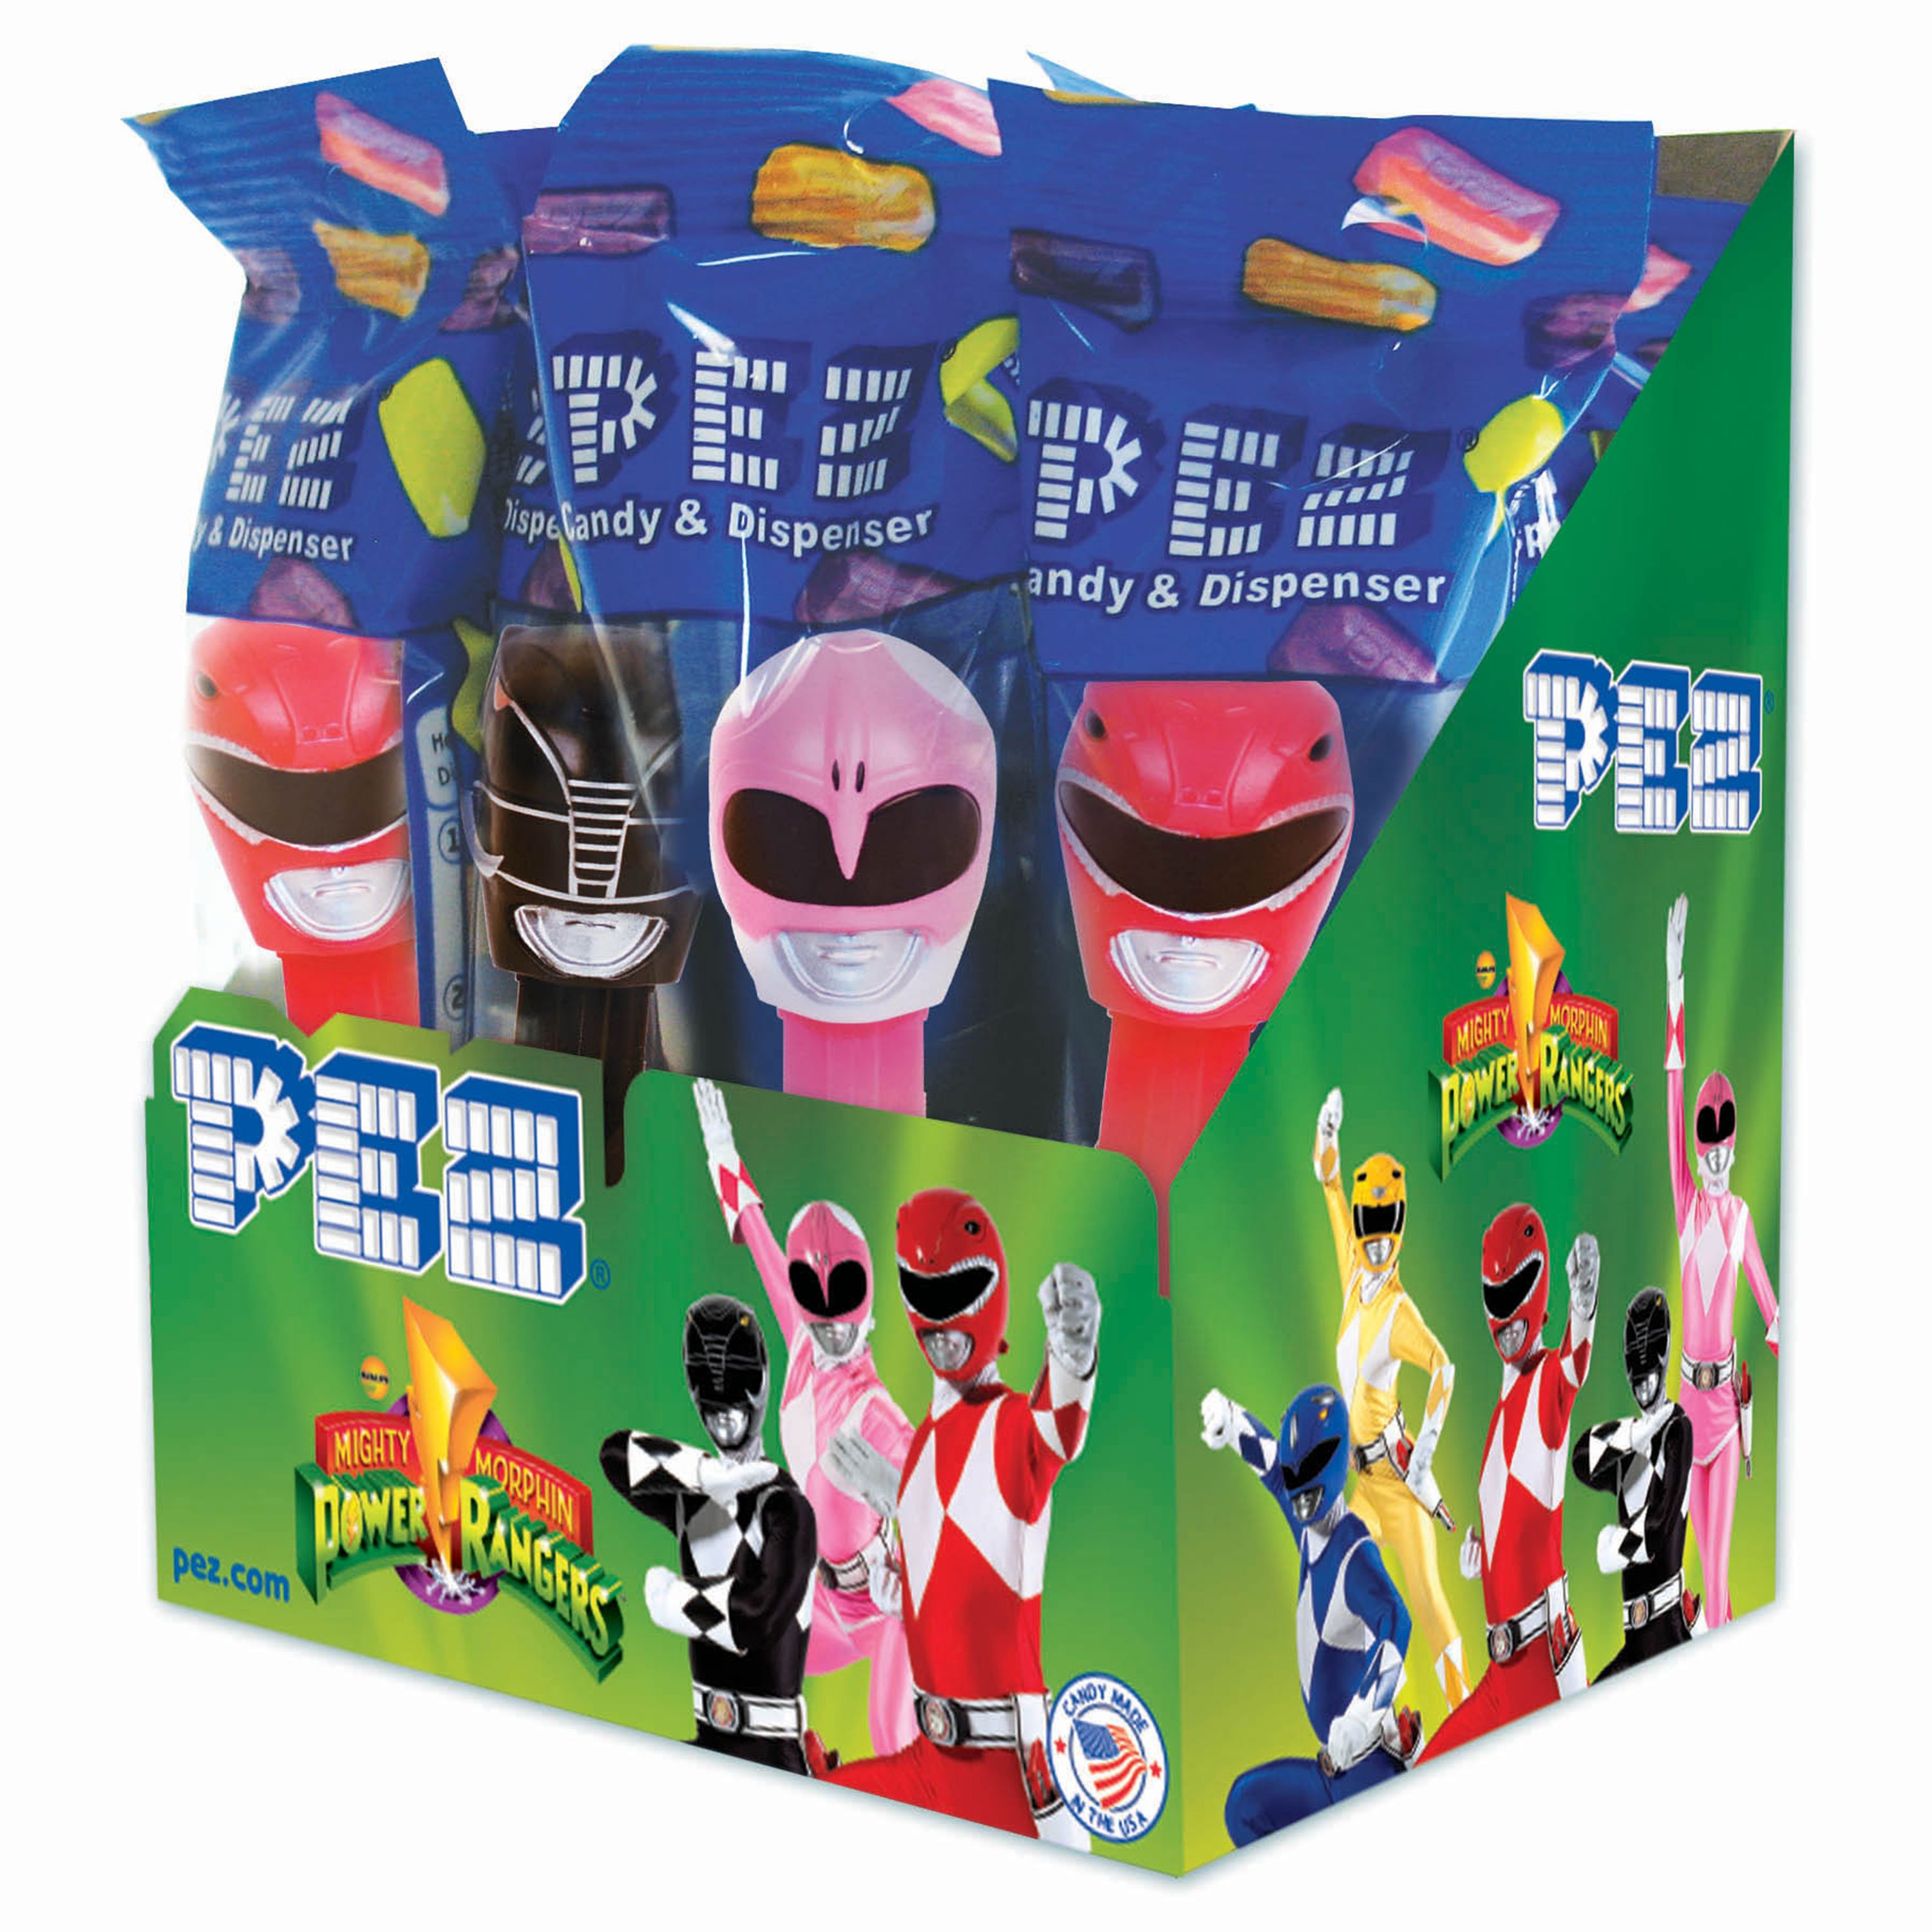 PEZ Candy Power Rangers Assortment, candy dispenser plus 2 rolls of assorted fruit candy, box of 12